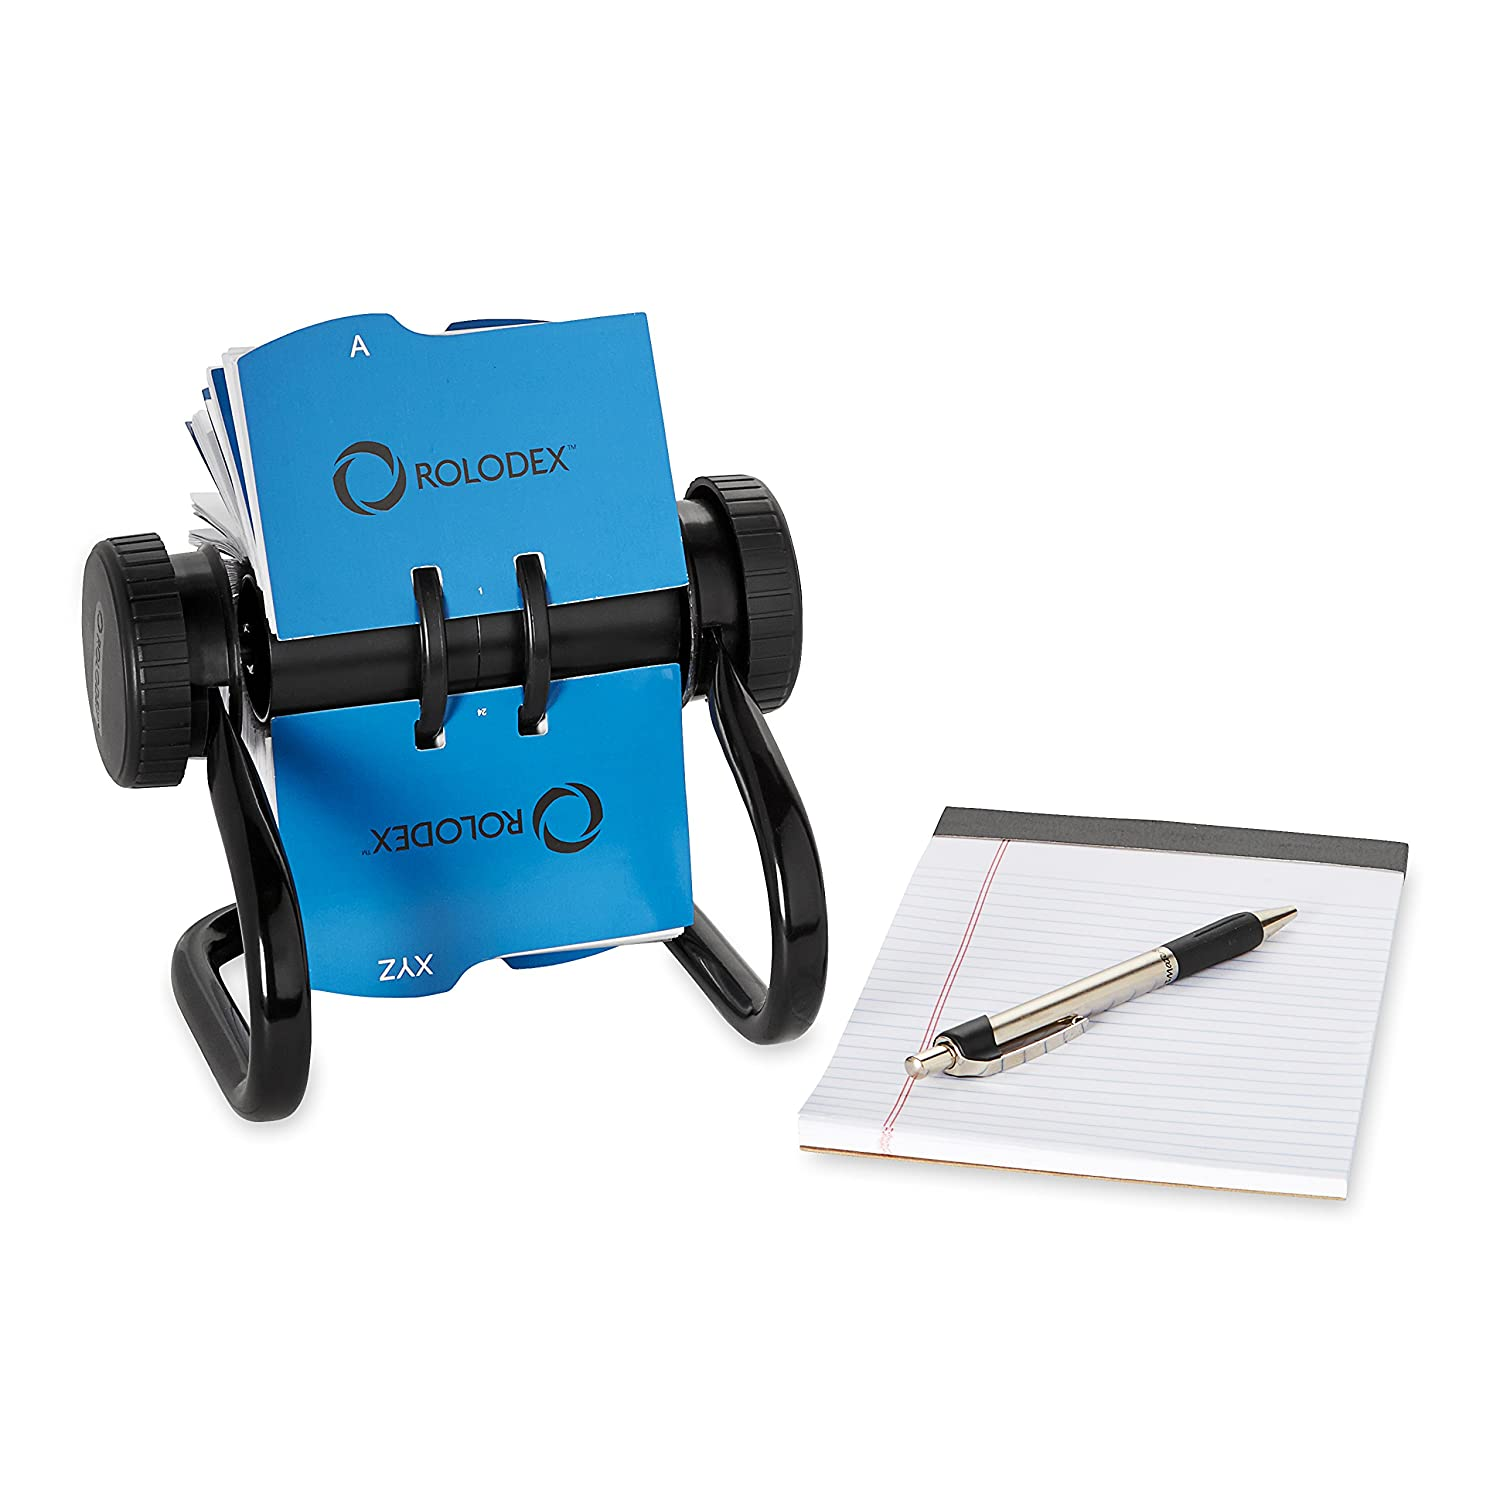 Amazon.com : Rolodex Open Rotary Business Card File with 200 2-5/8 ...